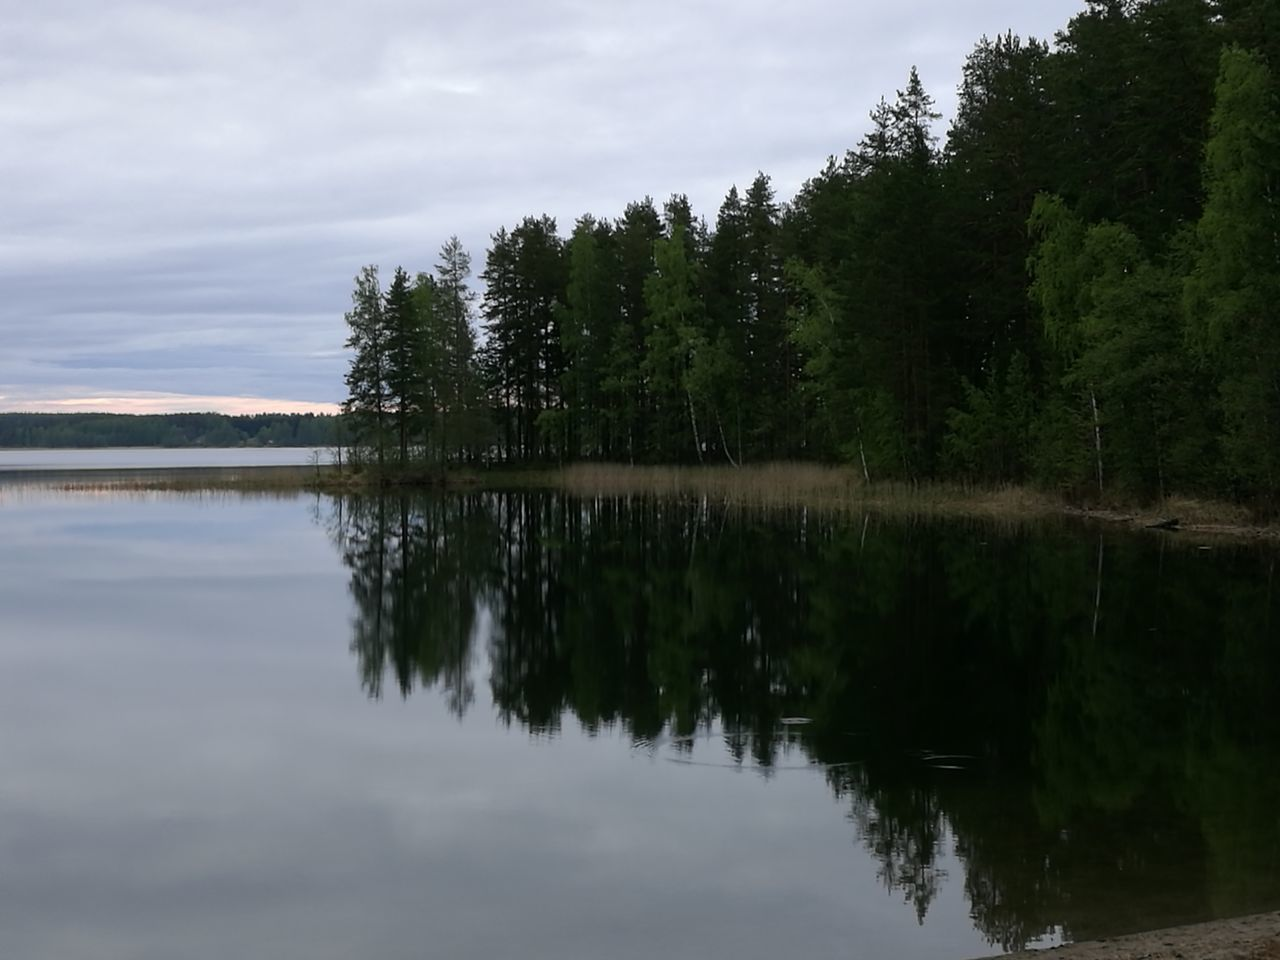 No People Landscape Vacations Beauty In Nature Tranquility Outdoors Cloud - Sky Reflection Water Sky Tree Lake Nature Symmetry Day Finland <3 Finland Summer Finland's Clean Nature Finlandiaa Finlande Finlandlovers Finland♥ Finland Finland :) Punkaharju